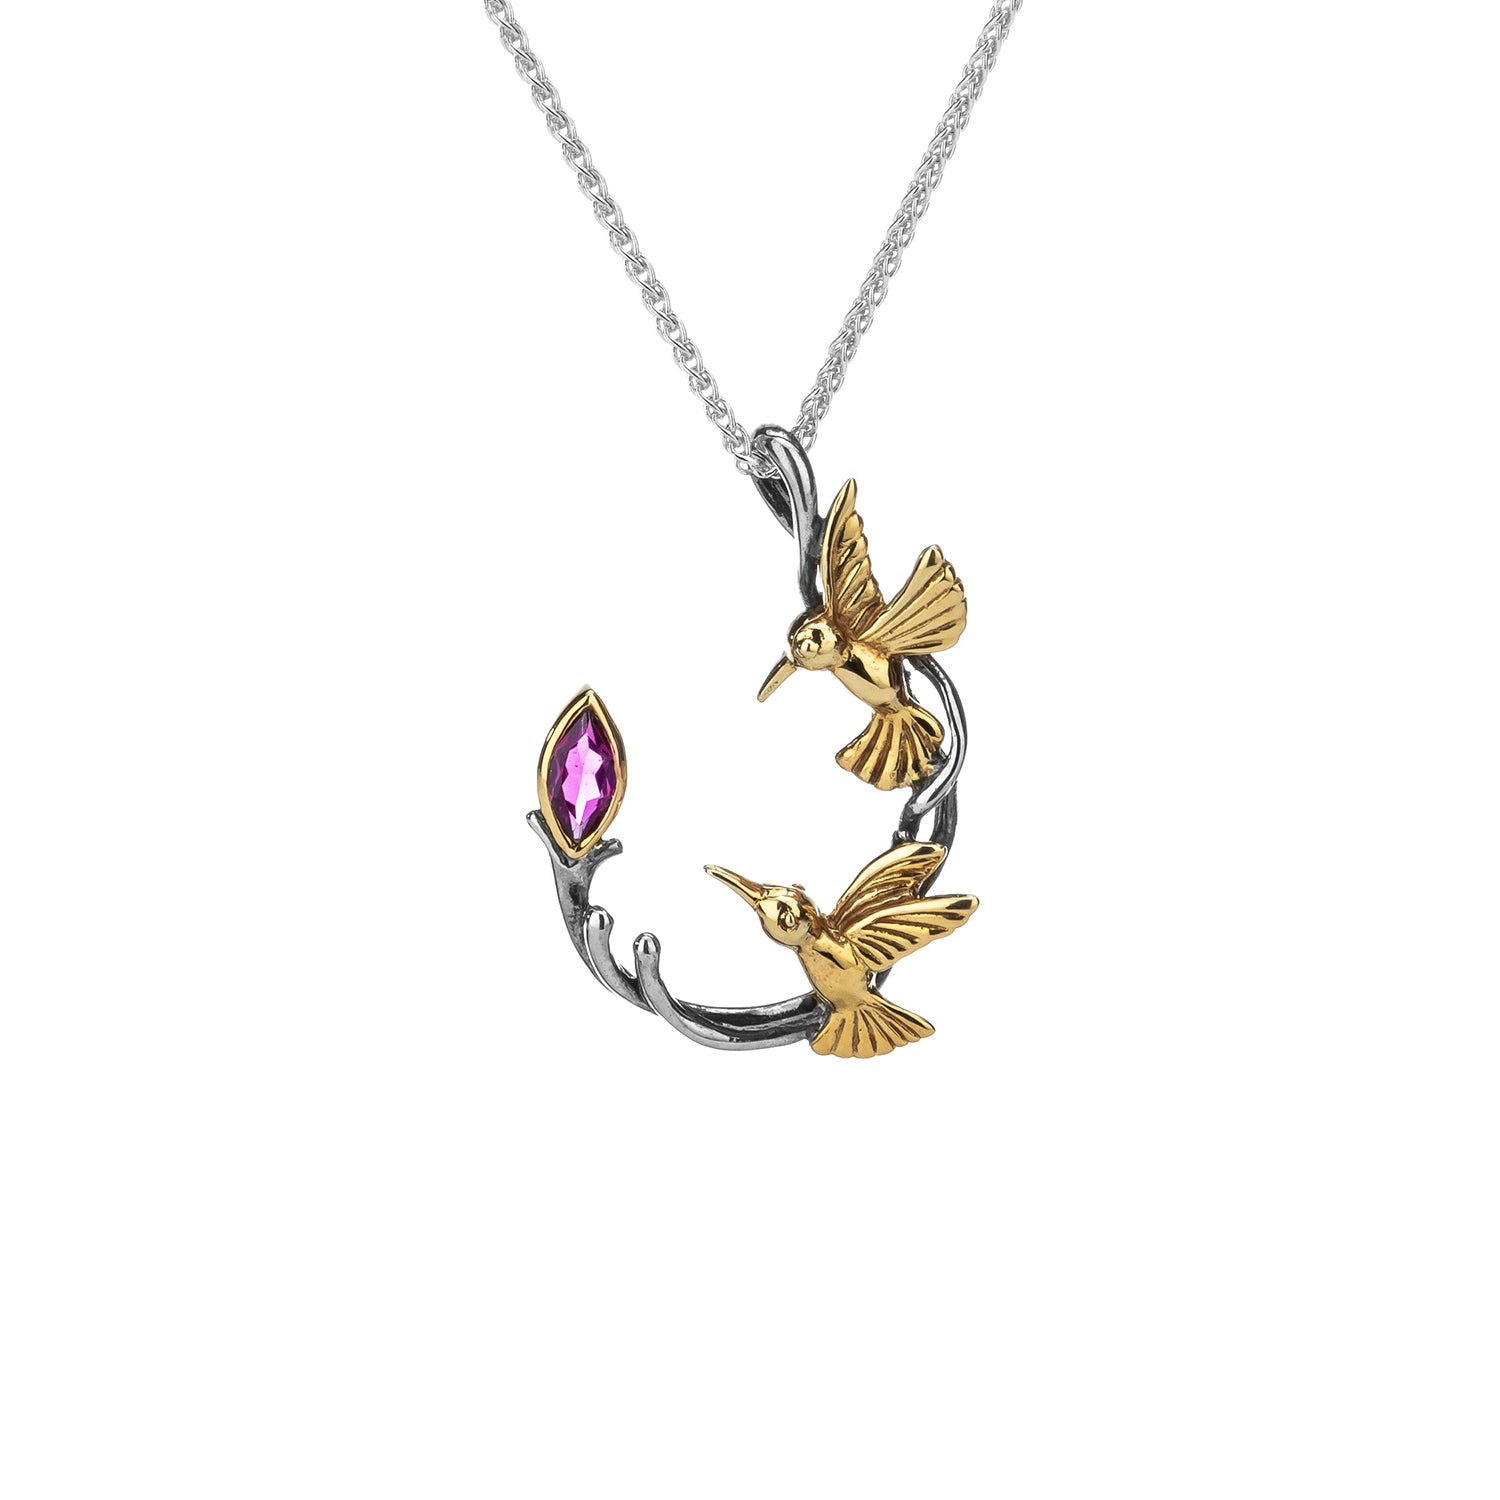 Pendant 10k Marquis Rhodolite Garnet Double Hummingbird Pendant from welch and company jewelers near syracuse ny